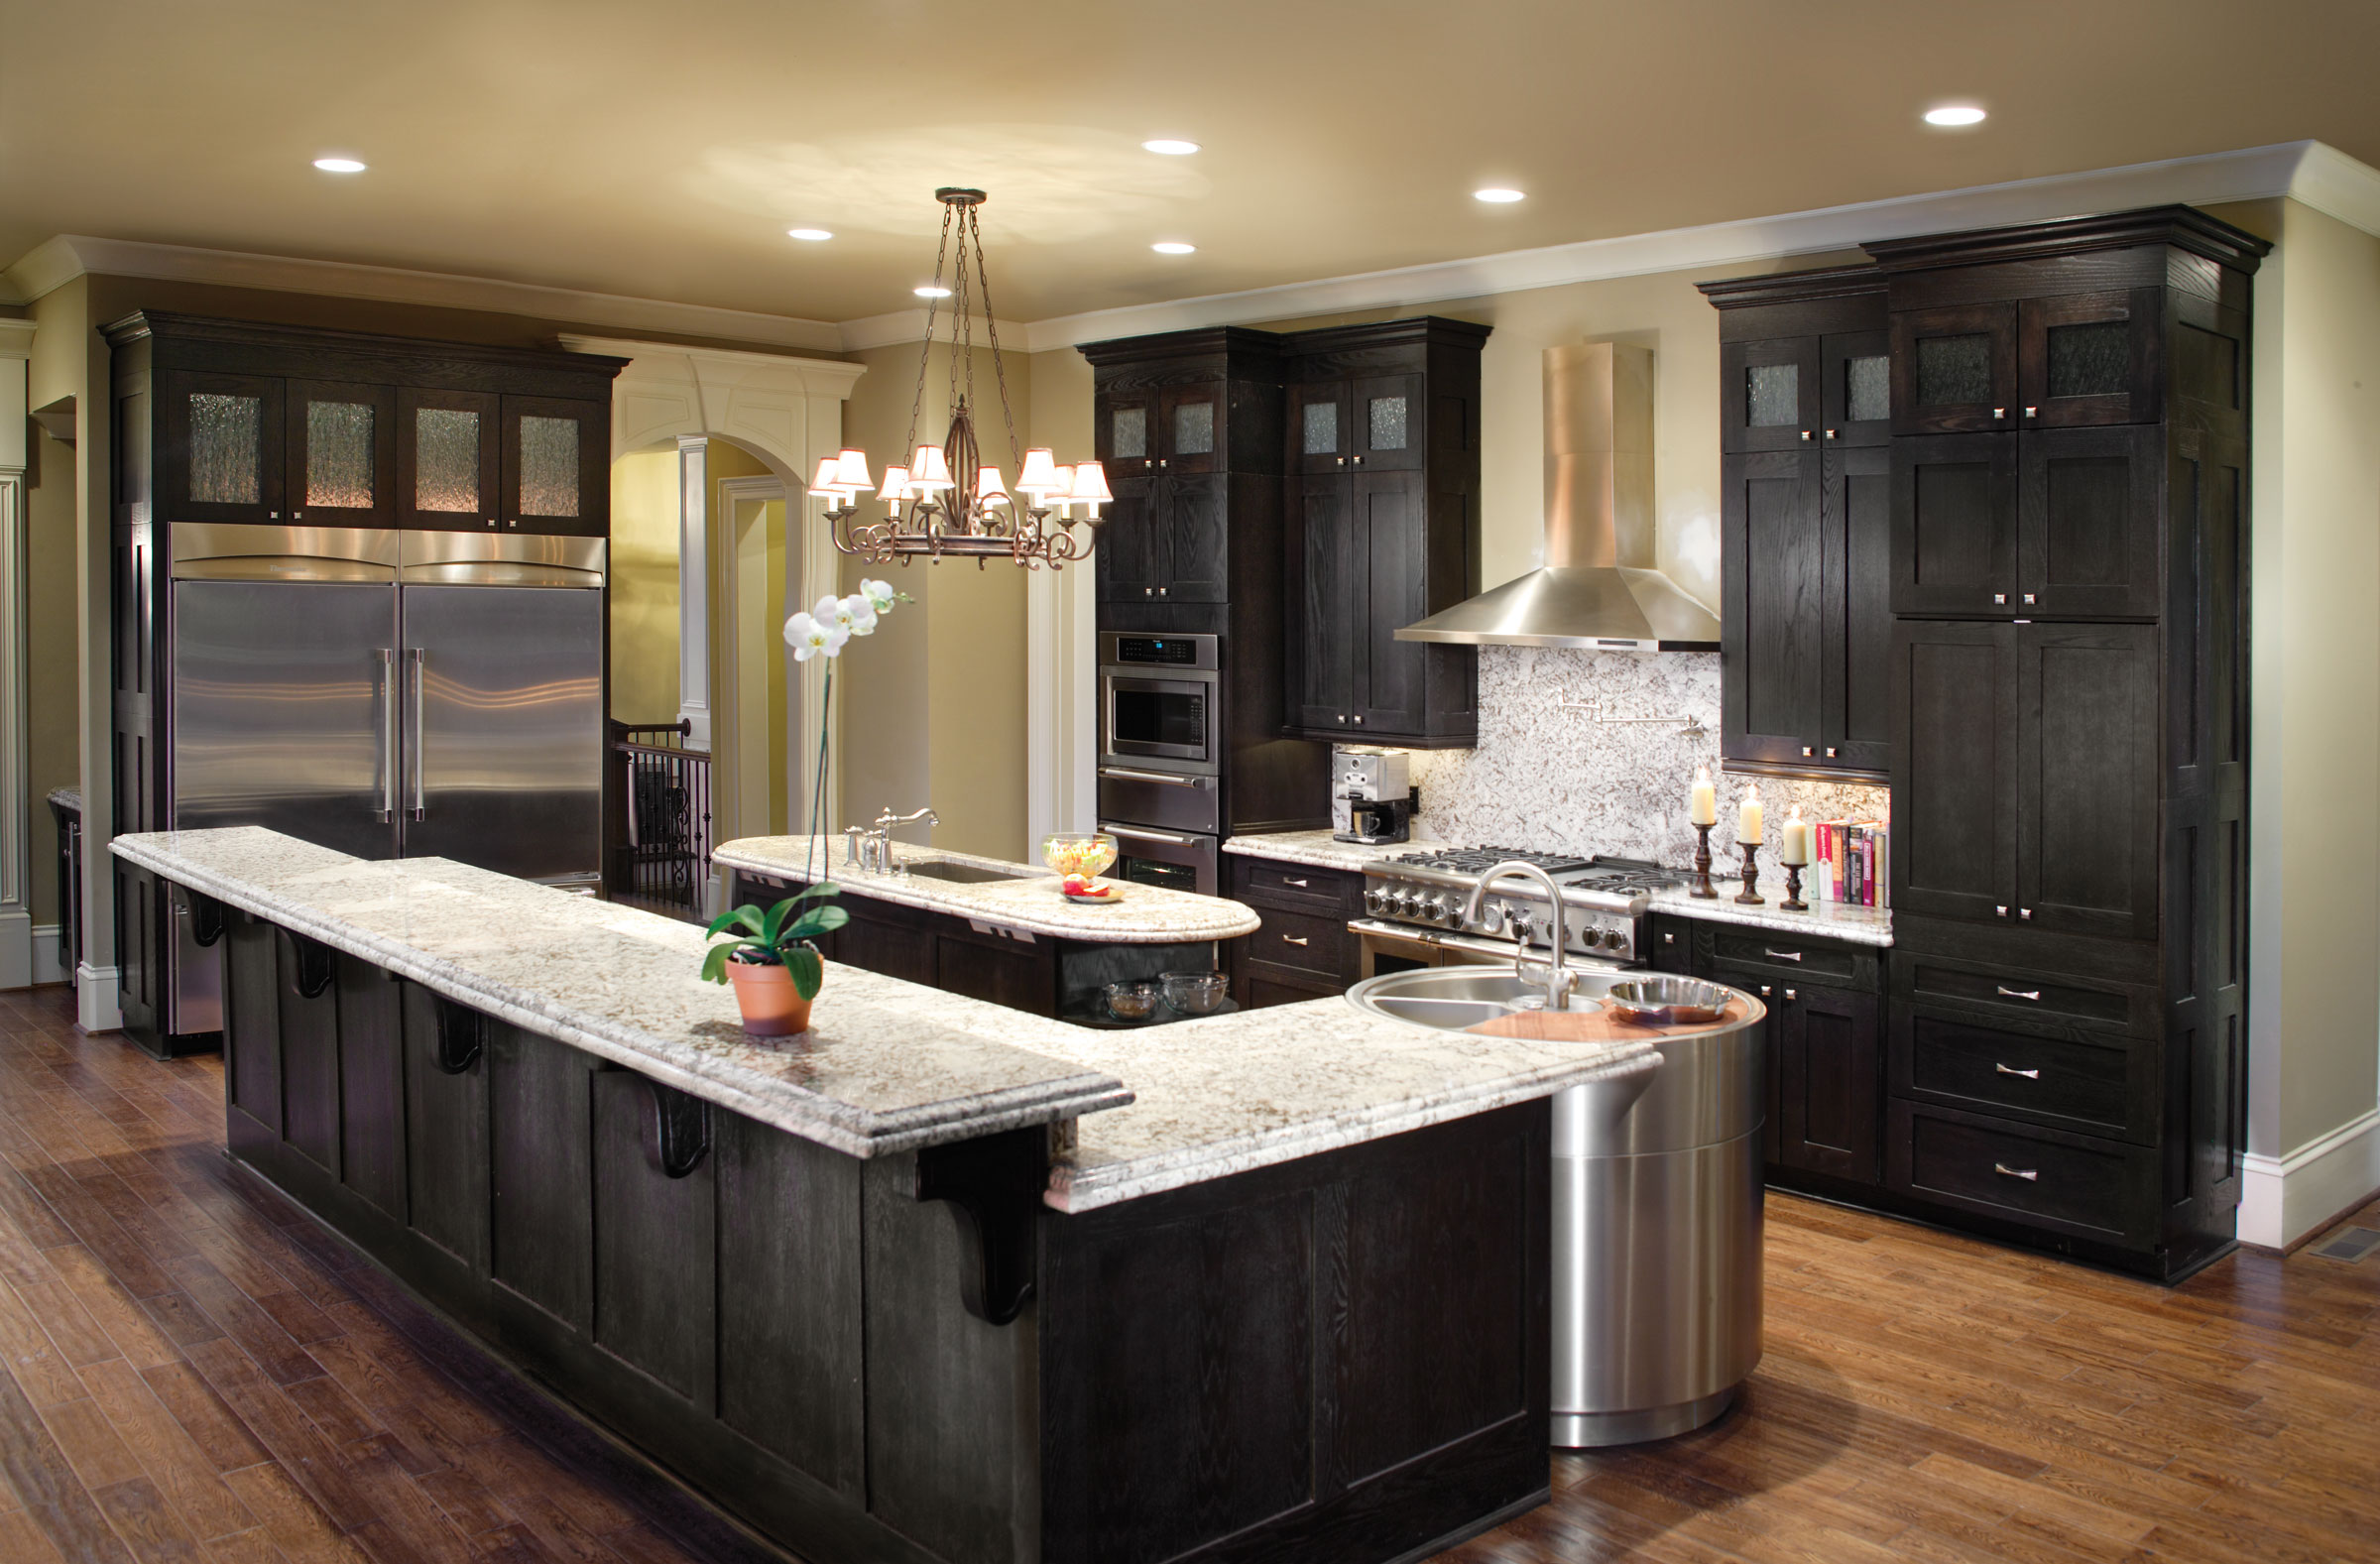 Custom bathroom kitchen cabinets phoenix cabinets by for Custom bathroom design